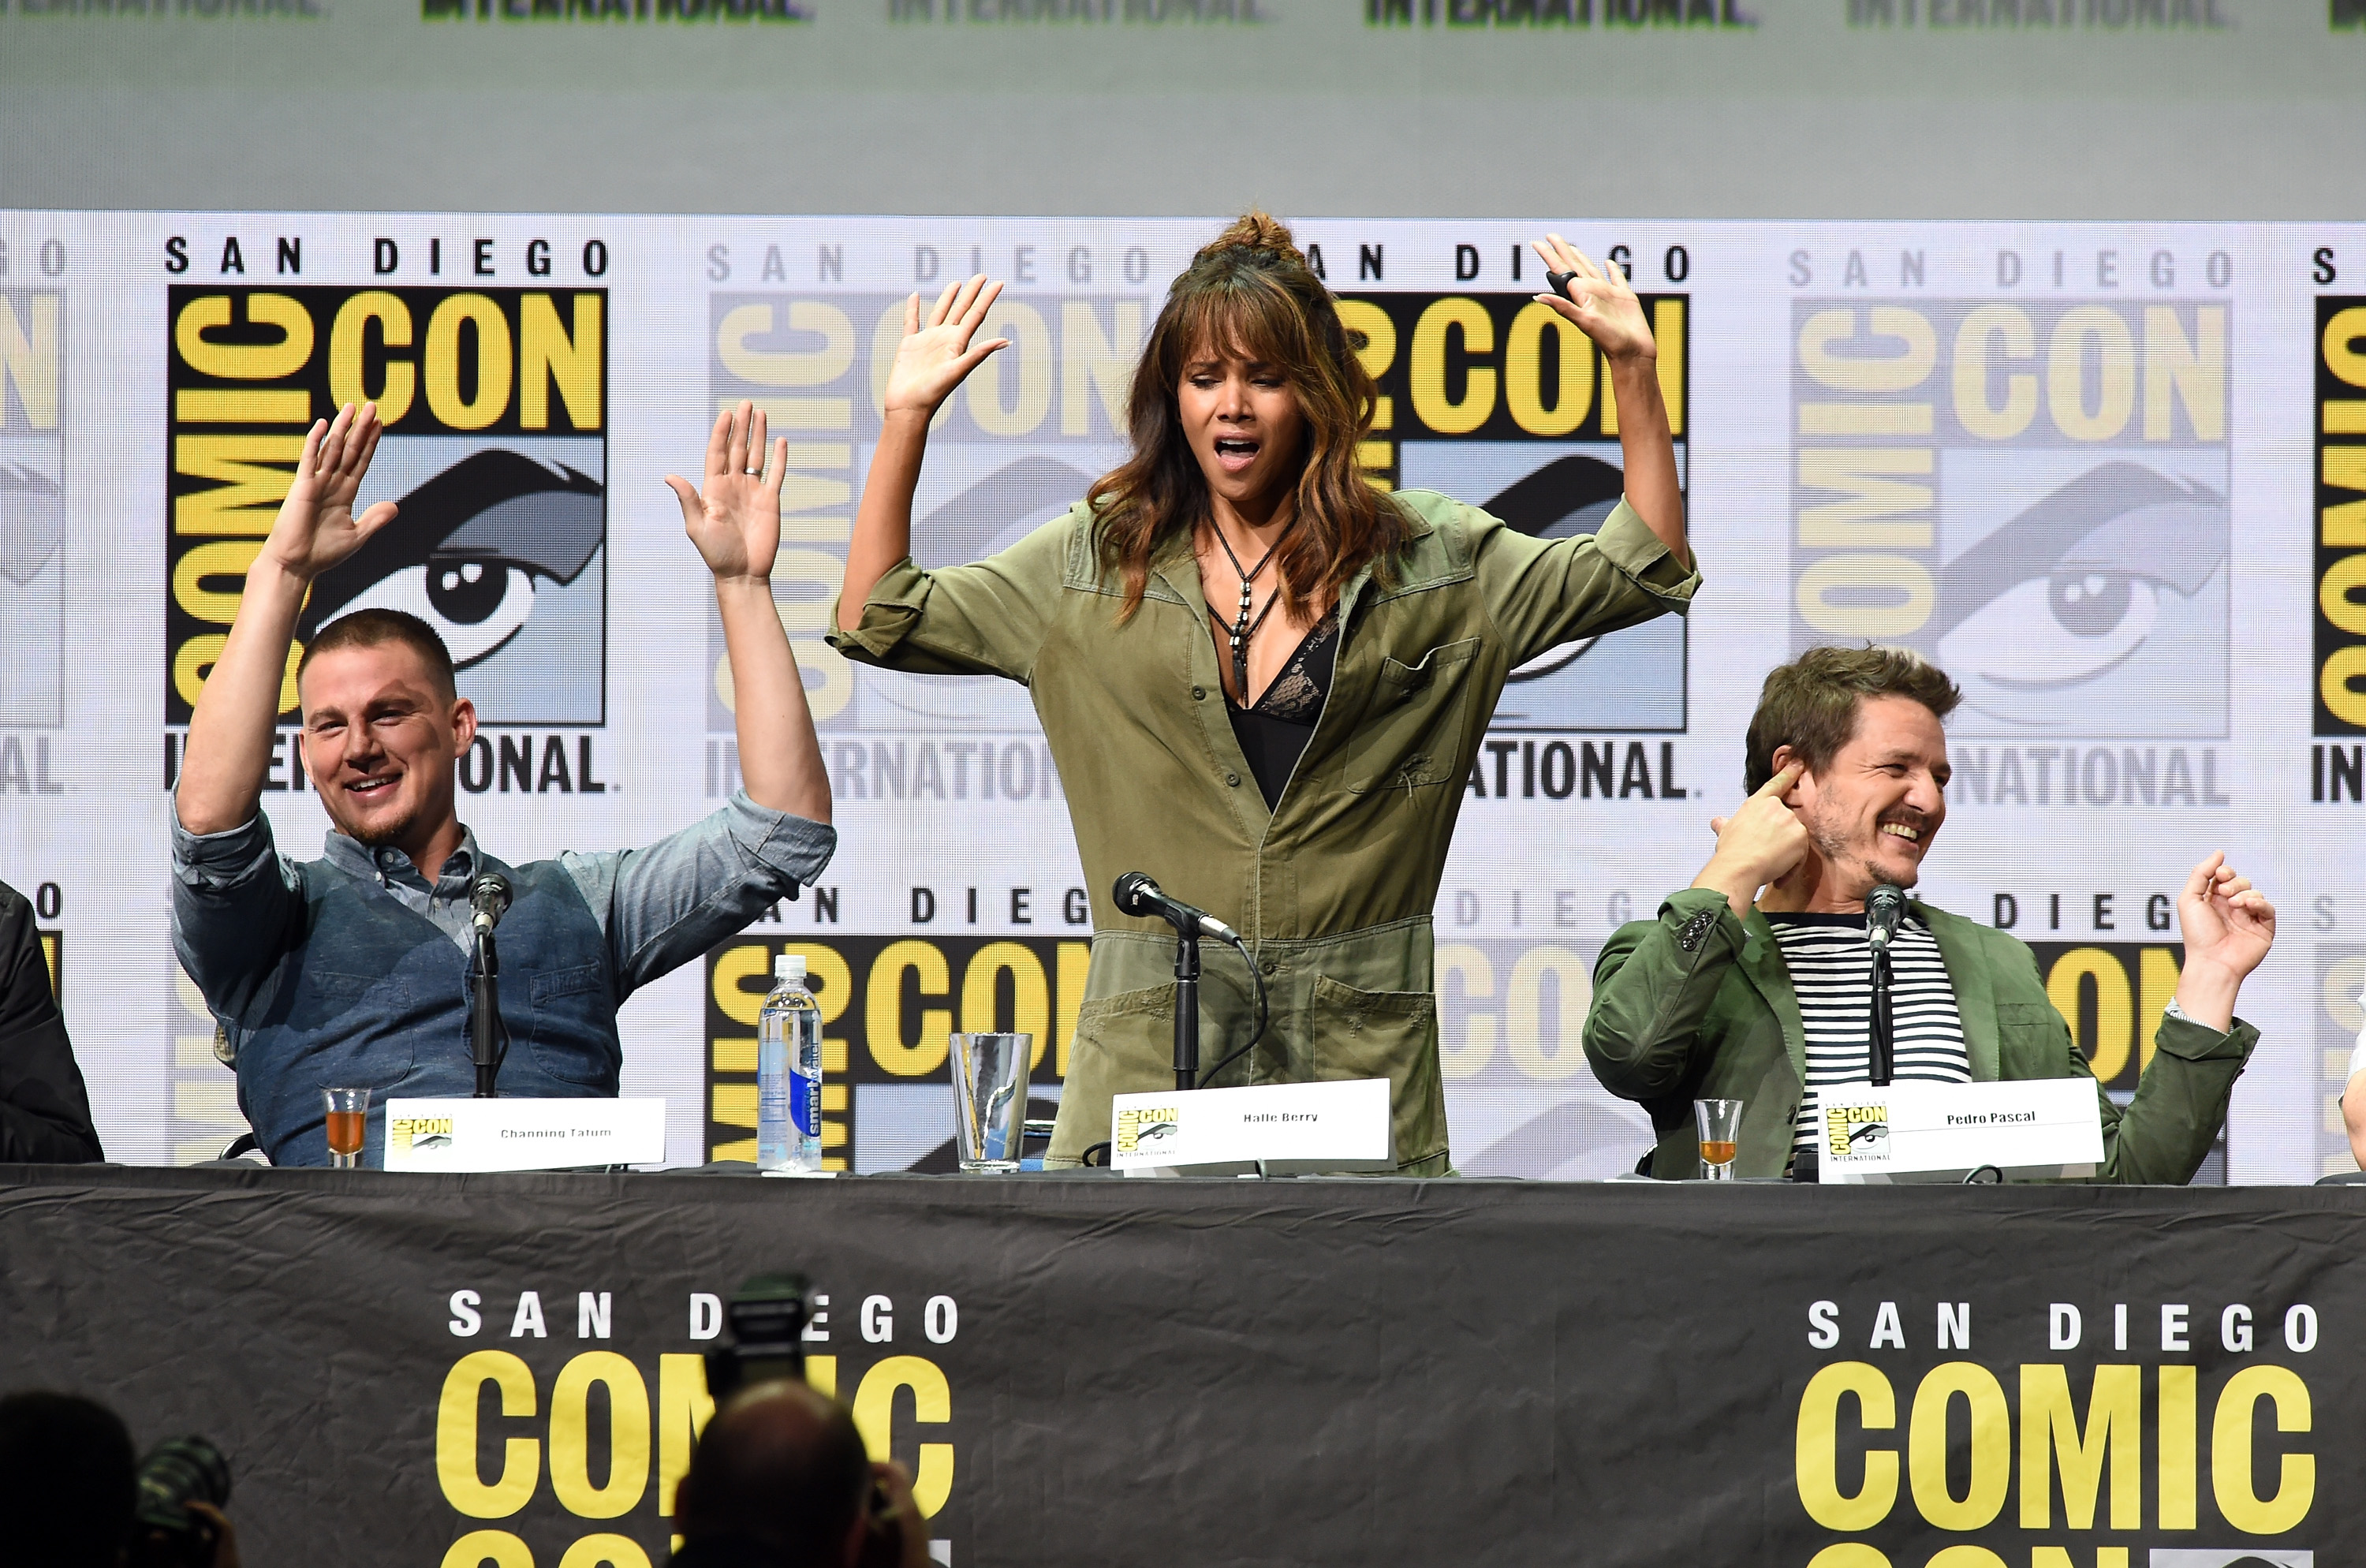 SAN DIEGO, CA - JULY 20:  (L-R) Actors Channing Tatum, Halle Berry and Pedro Pascal speak onstage at the 20th Century FOX panel during Comic-Con International 2017 at San Diego Convention Center on July 20, 2017 in San Diego, California.  (Photo by Kevin Winter/Getty Images)